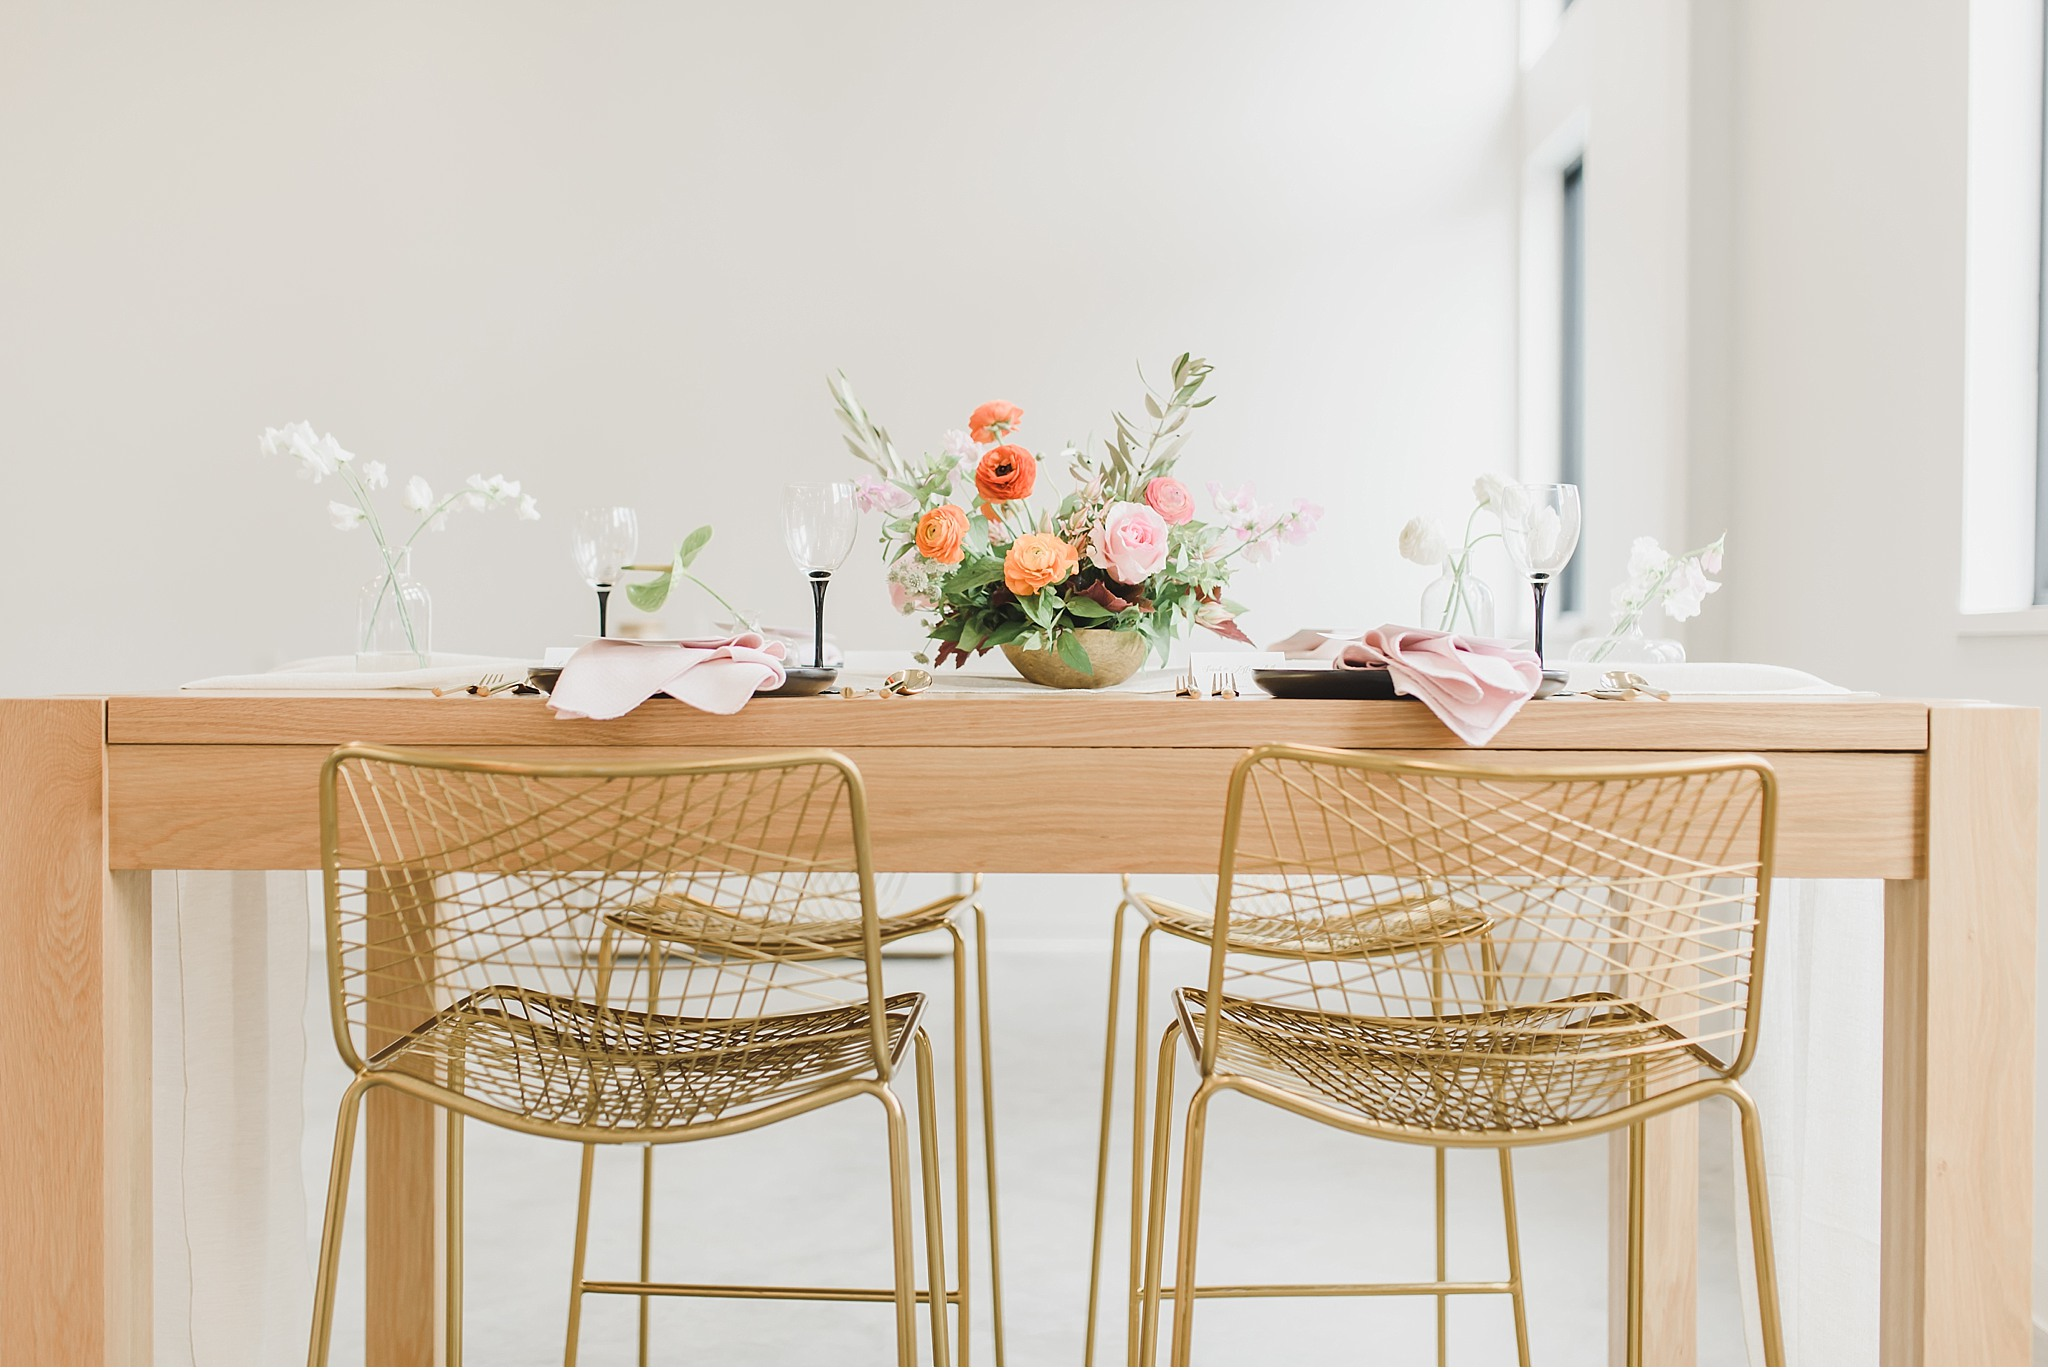 Beautiful table and florals  Light and Airy Styled Greek Wedding Supply Manheim PA Wedding photography photo_1854.jpg